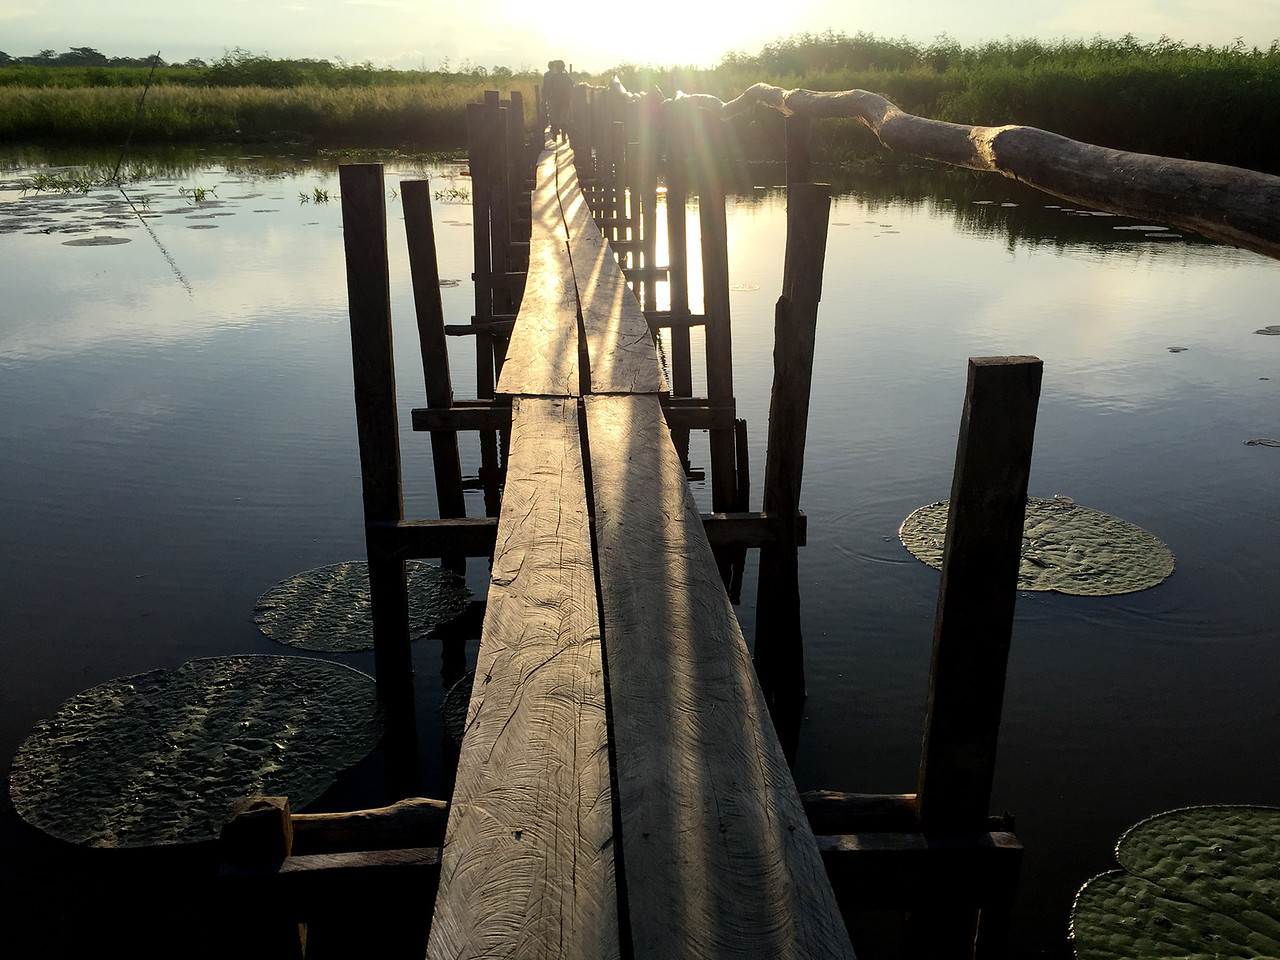 Bridge to enter the land from the Amazon river